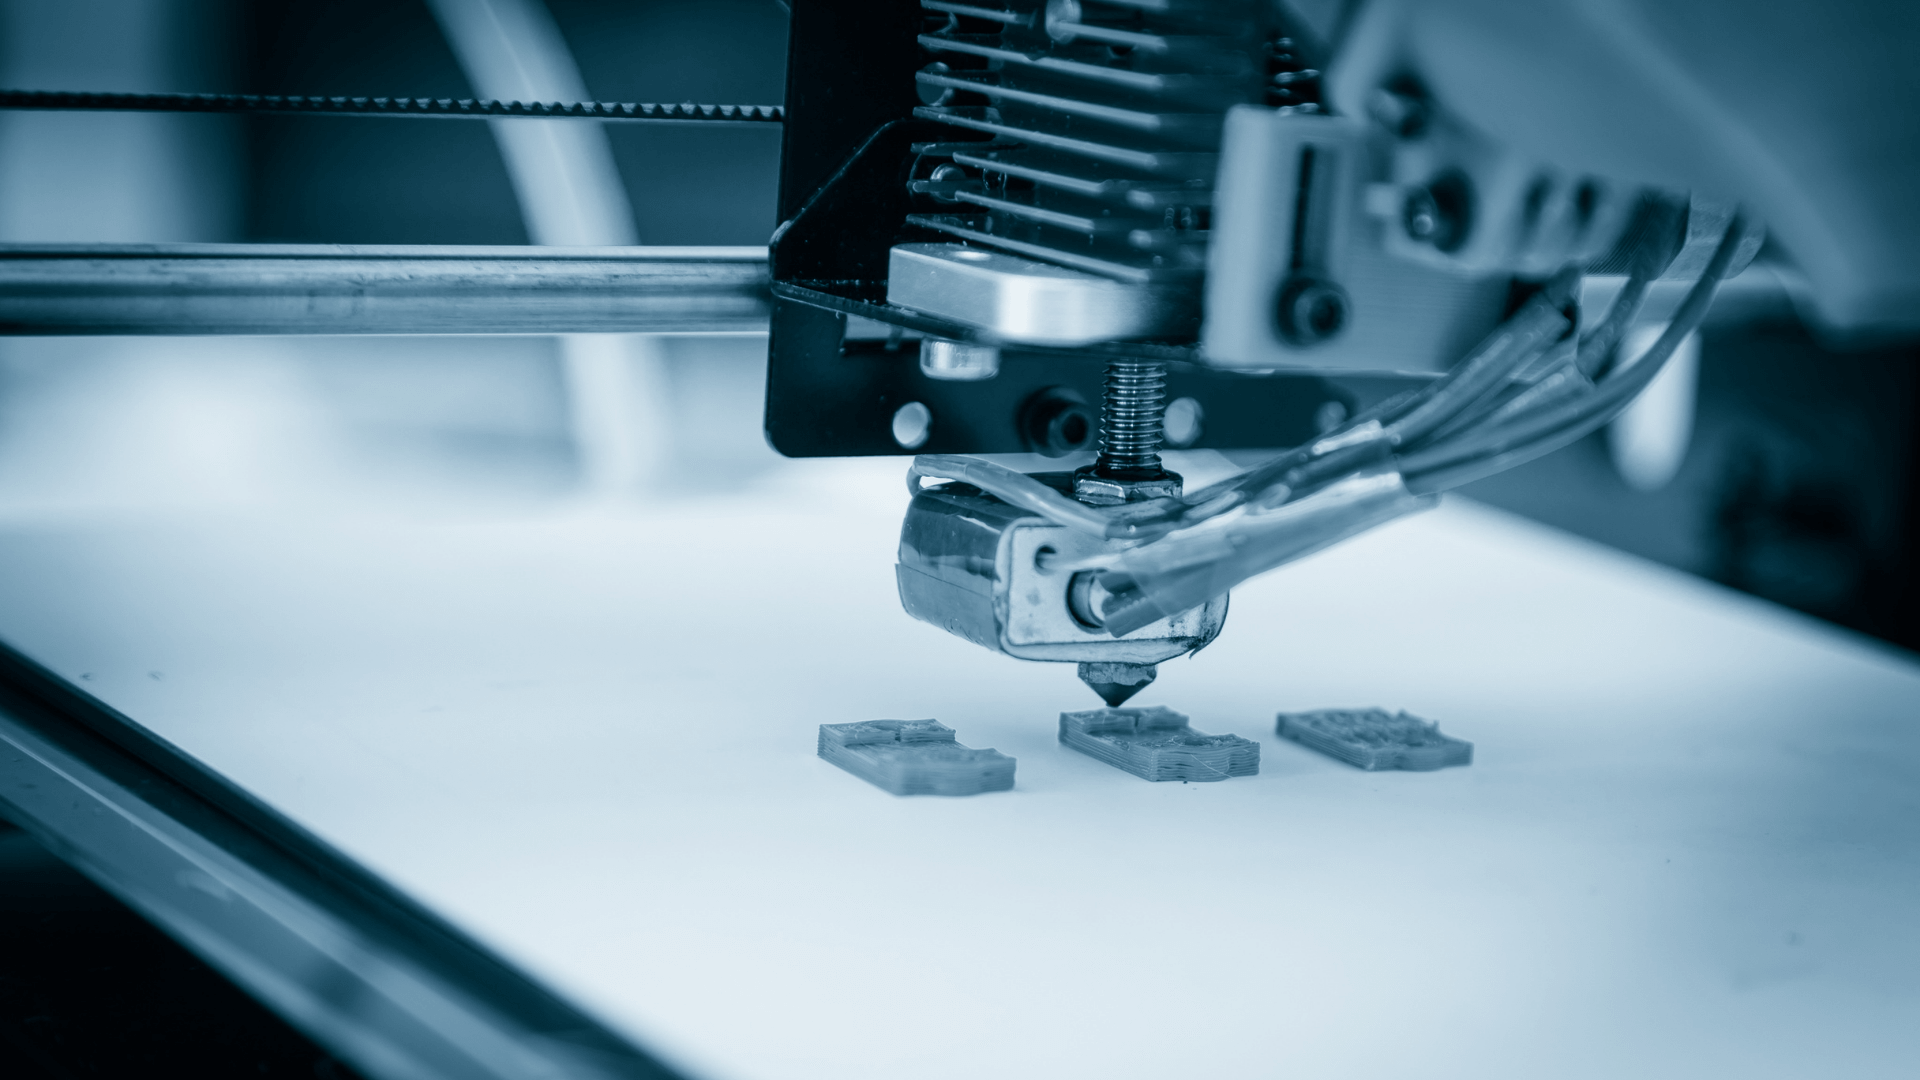 Cyient Enhances Its Additive Manufacturing Solutions with Implementation of SLM ® 280 System in Flor...